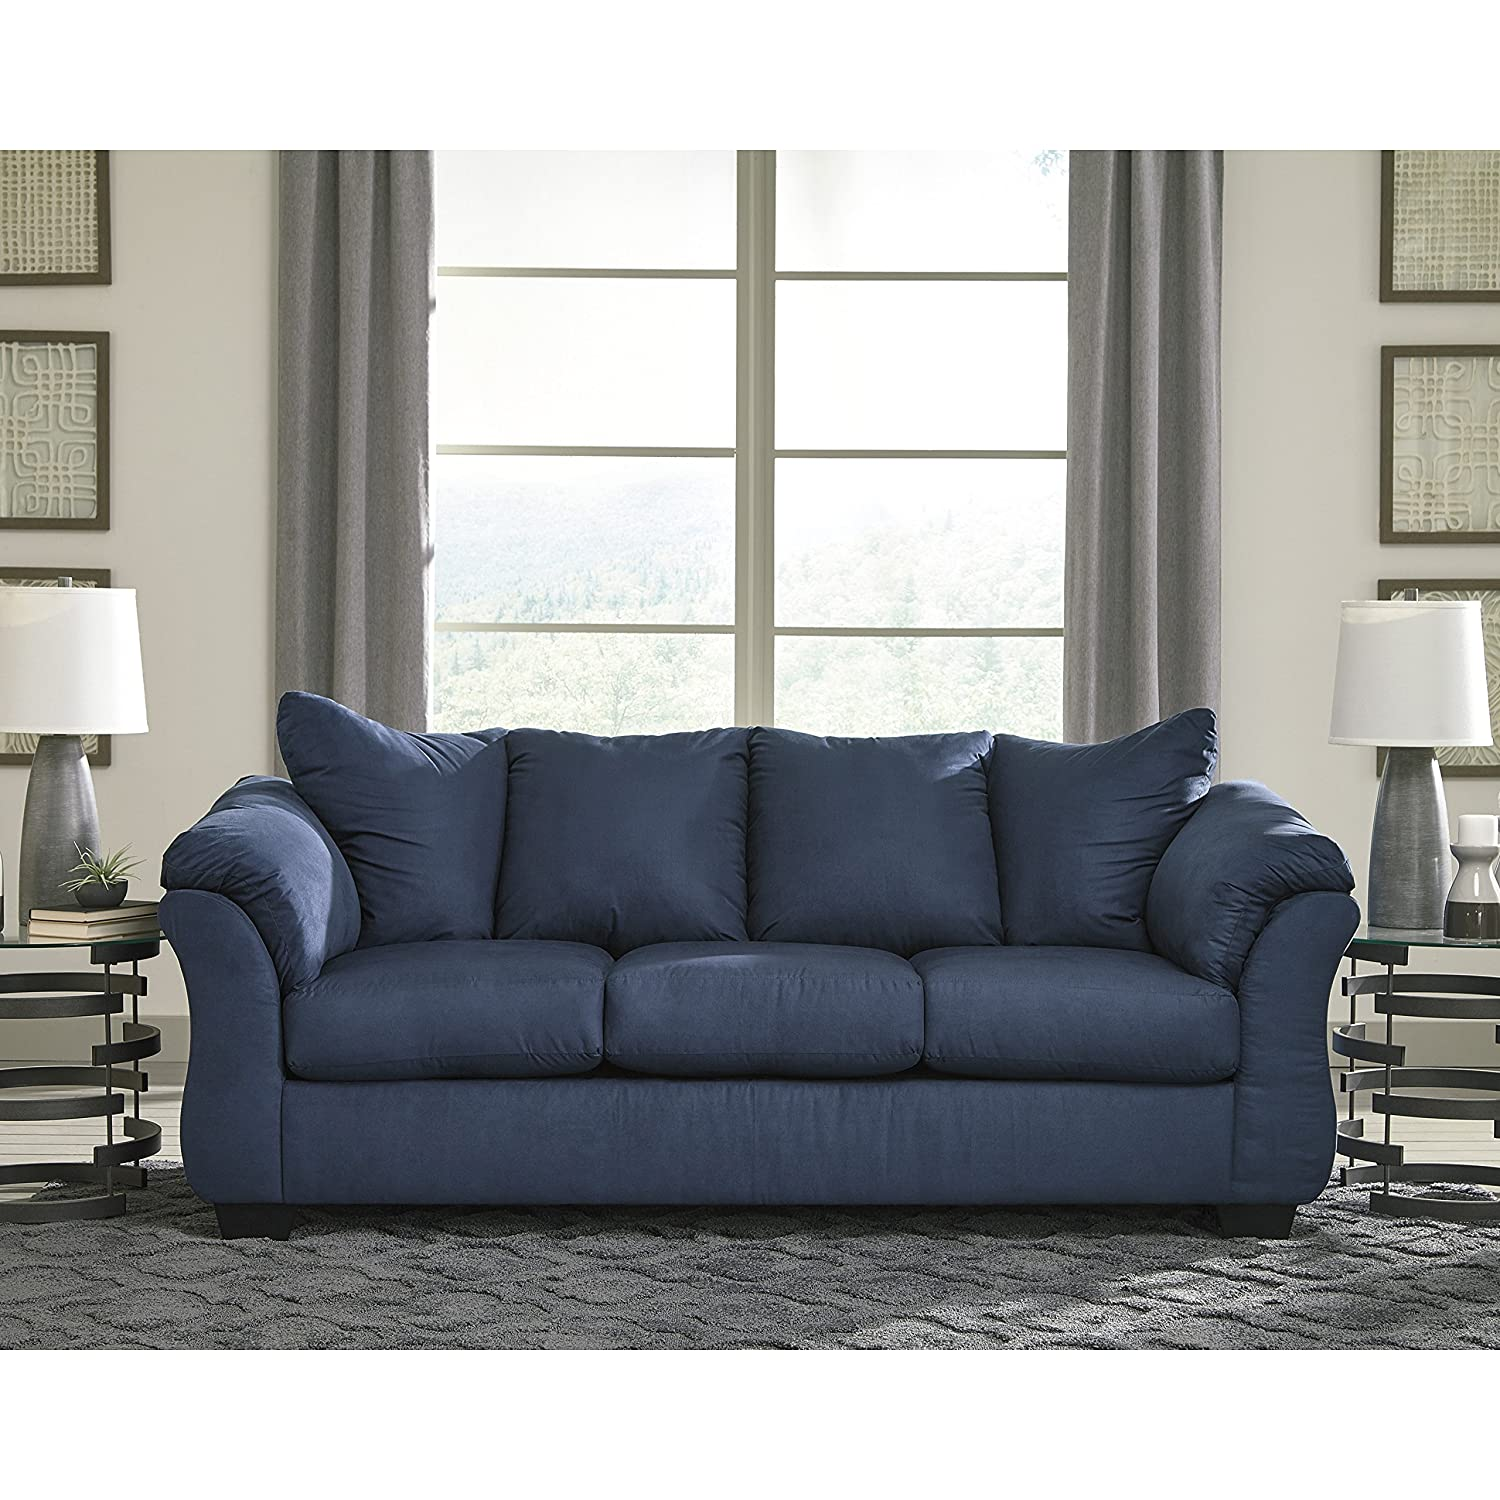 Amazon.com: Flash Furniture FSD-1109SO-BLU-GG Blue Microfiber Sofa ...